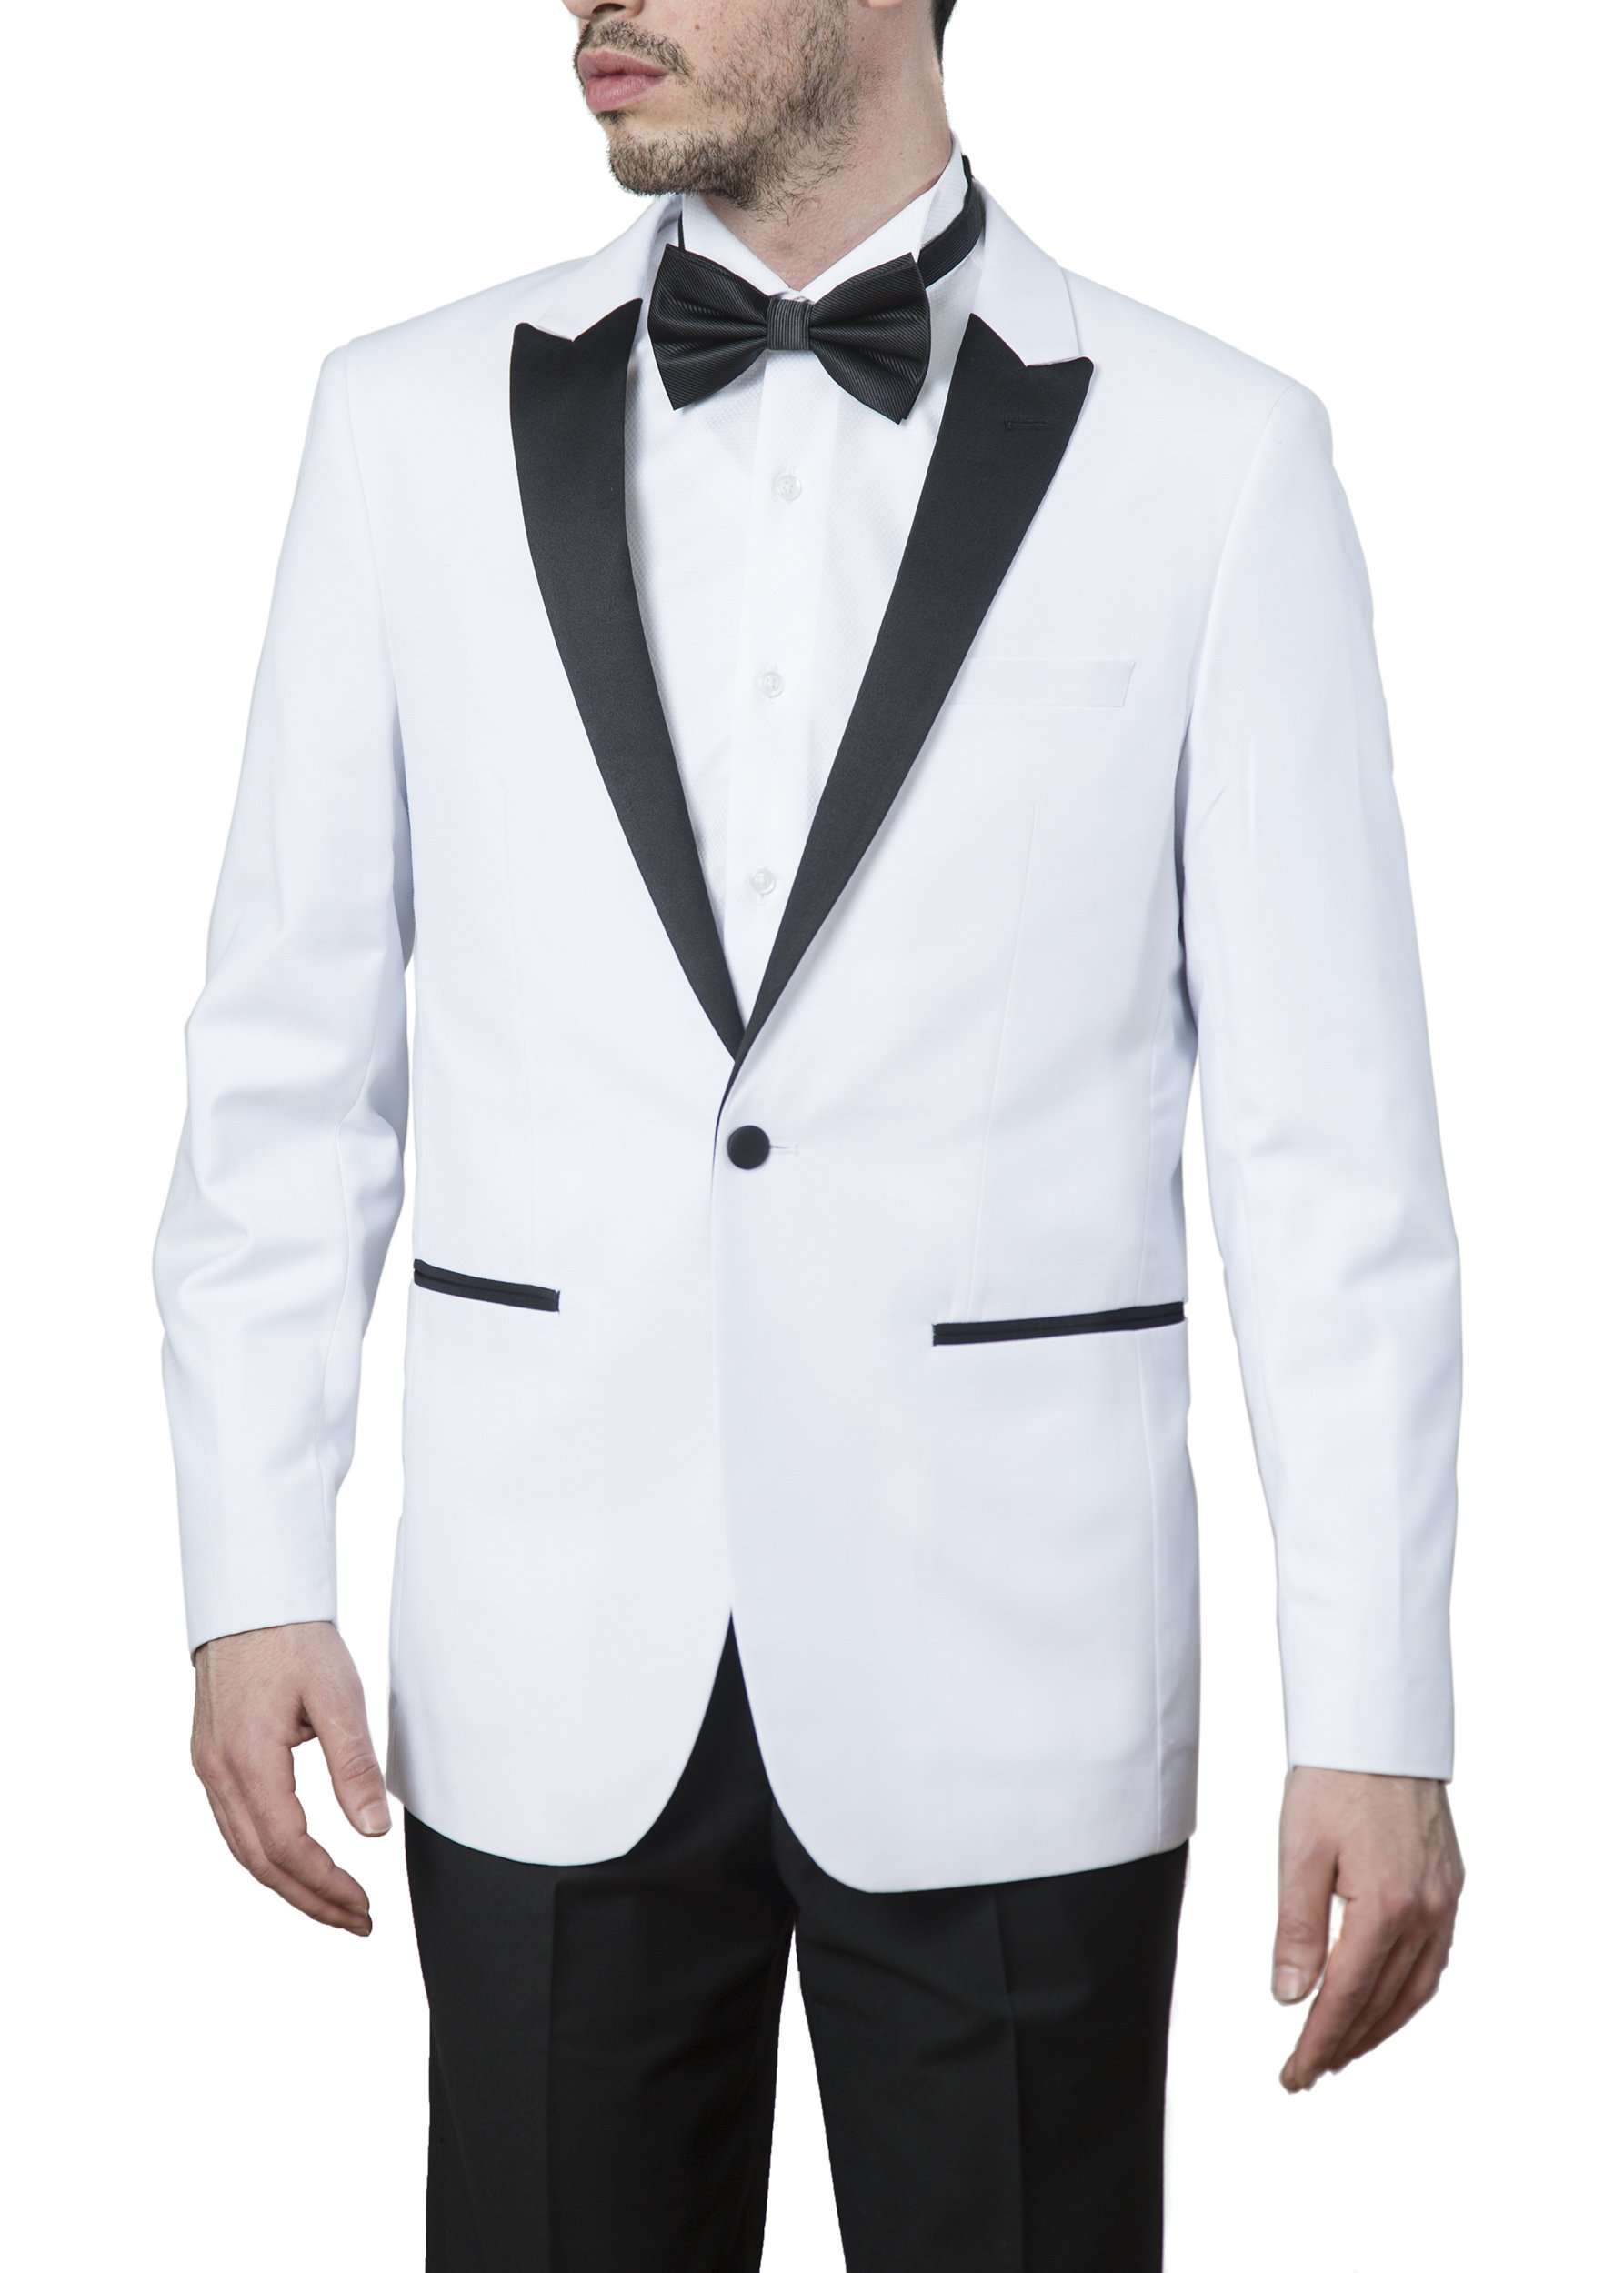 9d083a9278 Giorgio Fiorelli Men s Modern Fit Two-Piece Tuxedo Suit Set - Colors  product image